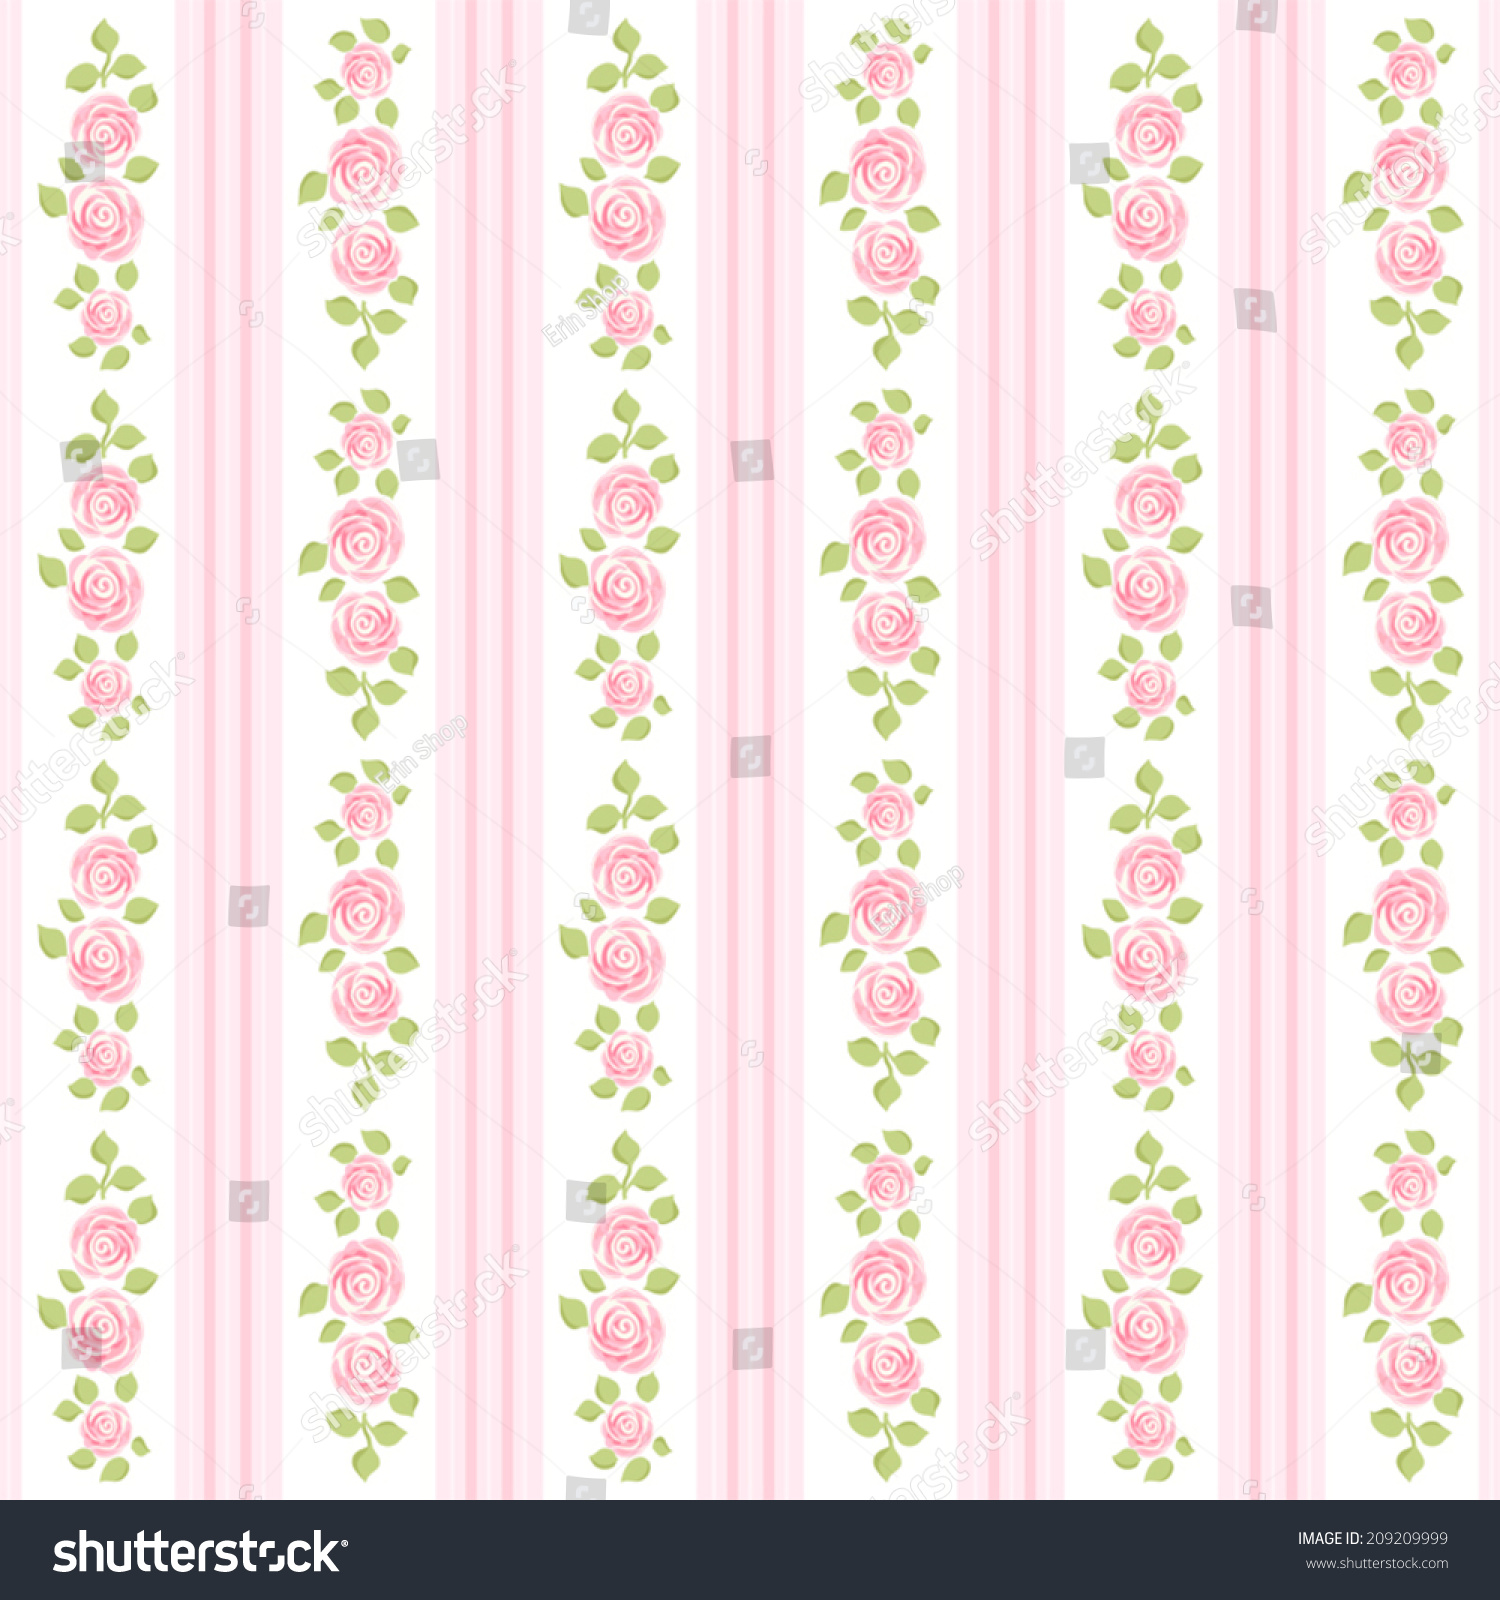 Retro Wallpaper With Roses On Striped Background In Shabby Chic Style